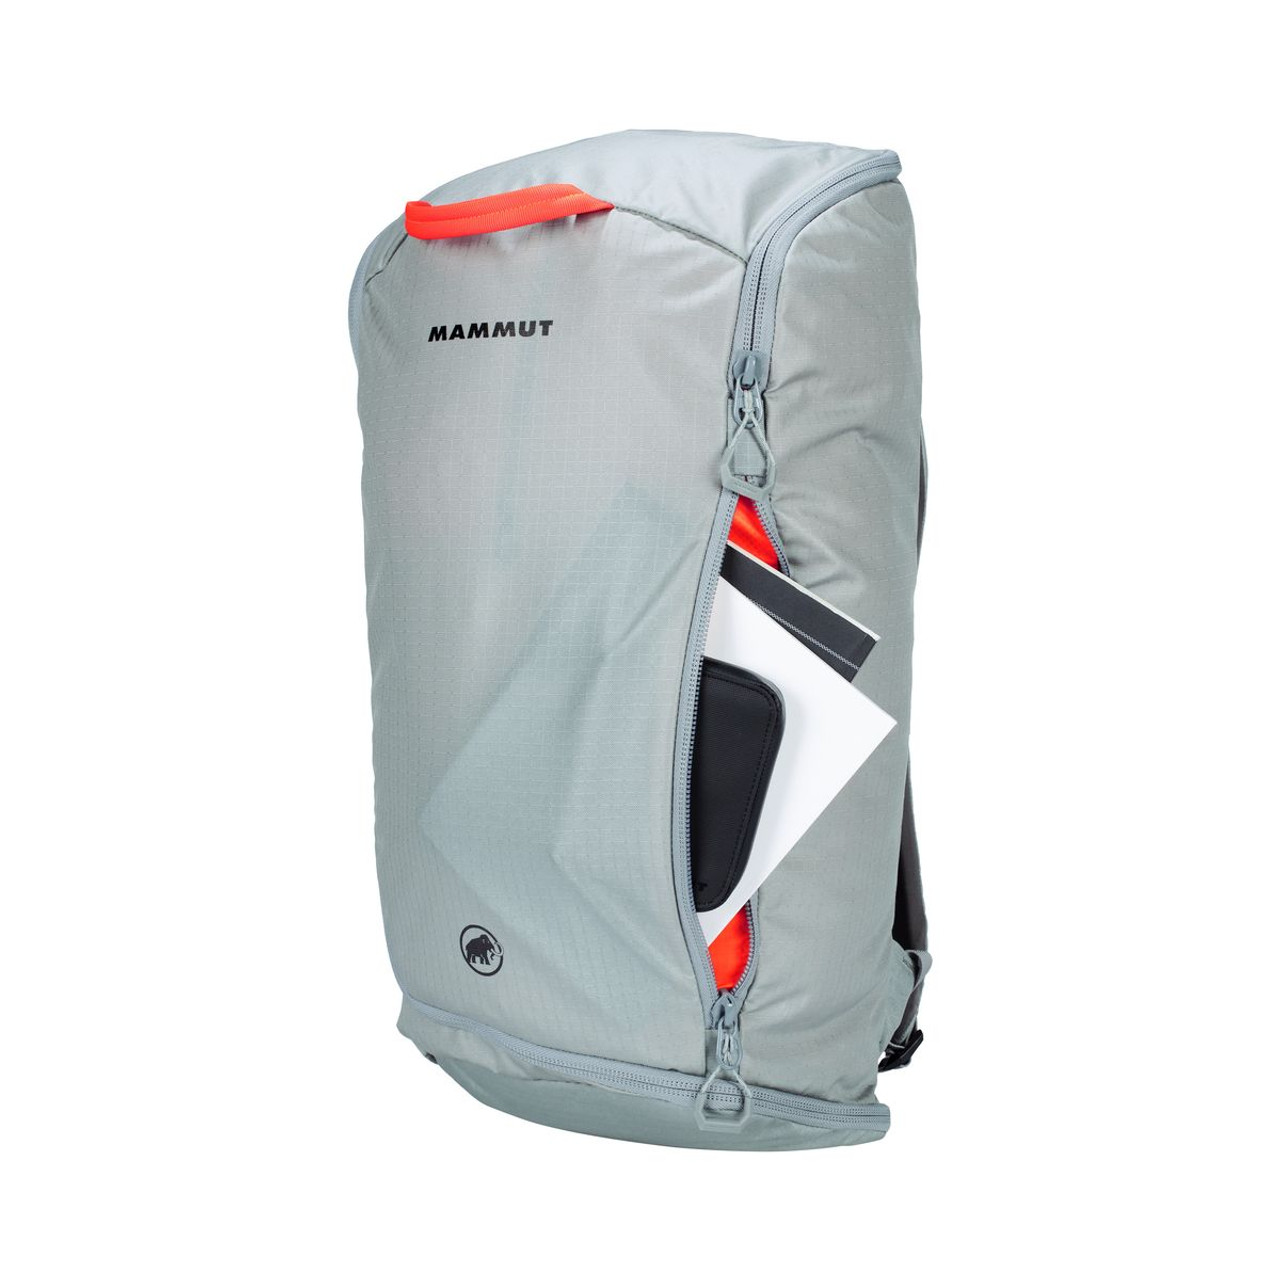 Mammut Neon Smart 35L - Front - Mountain Mail Order South Africa - Granit